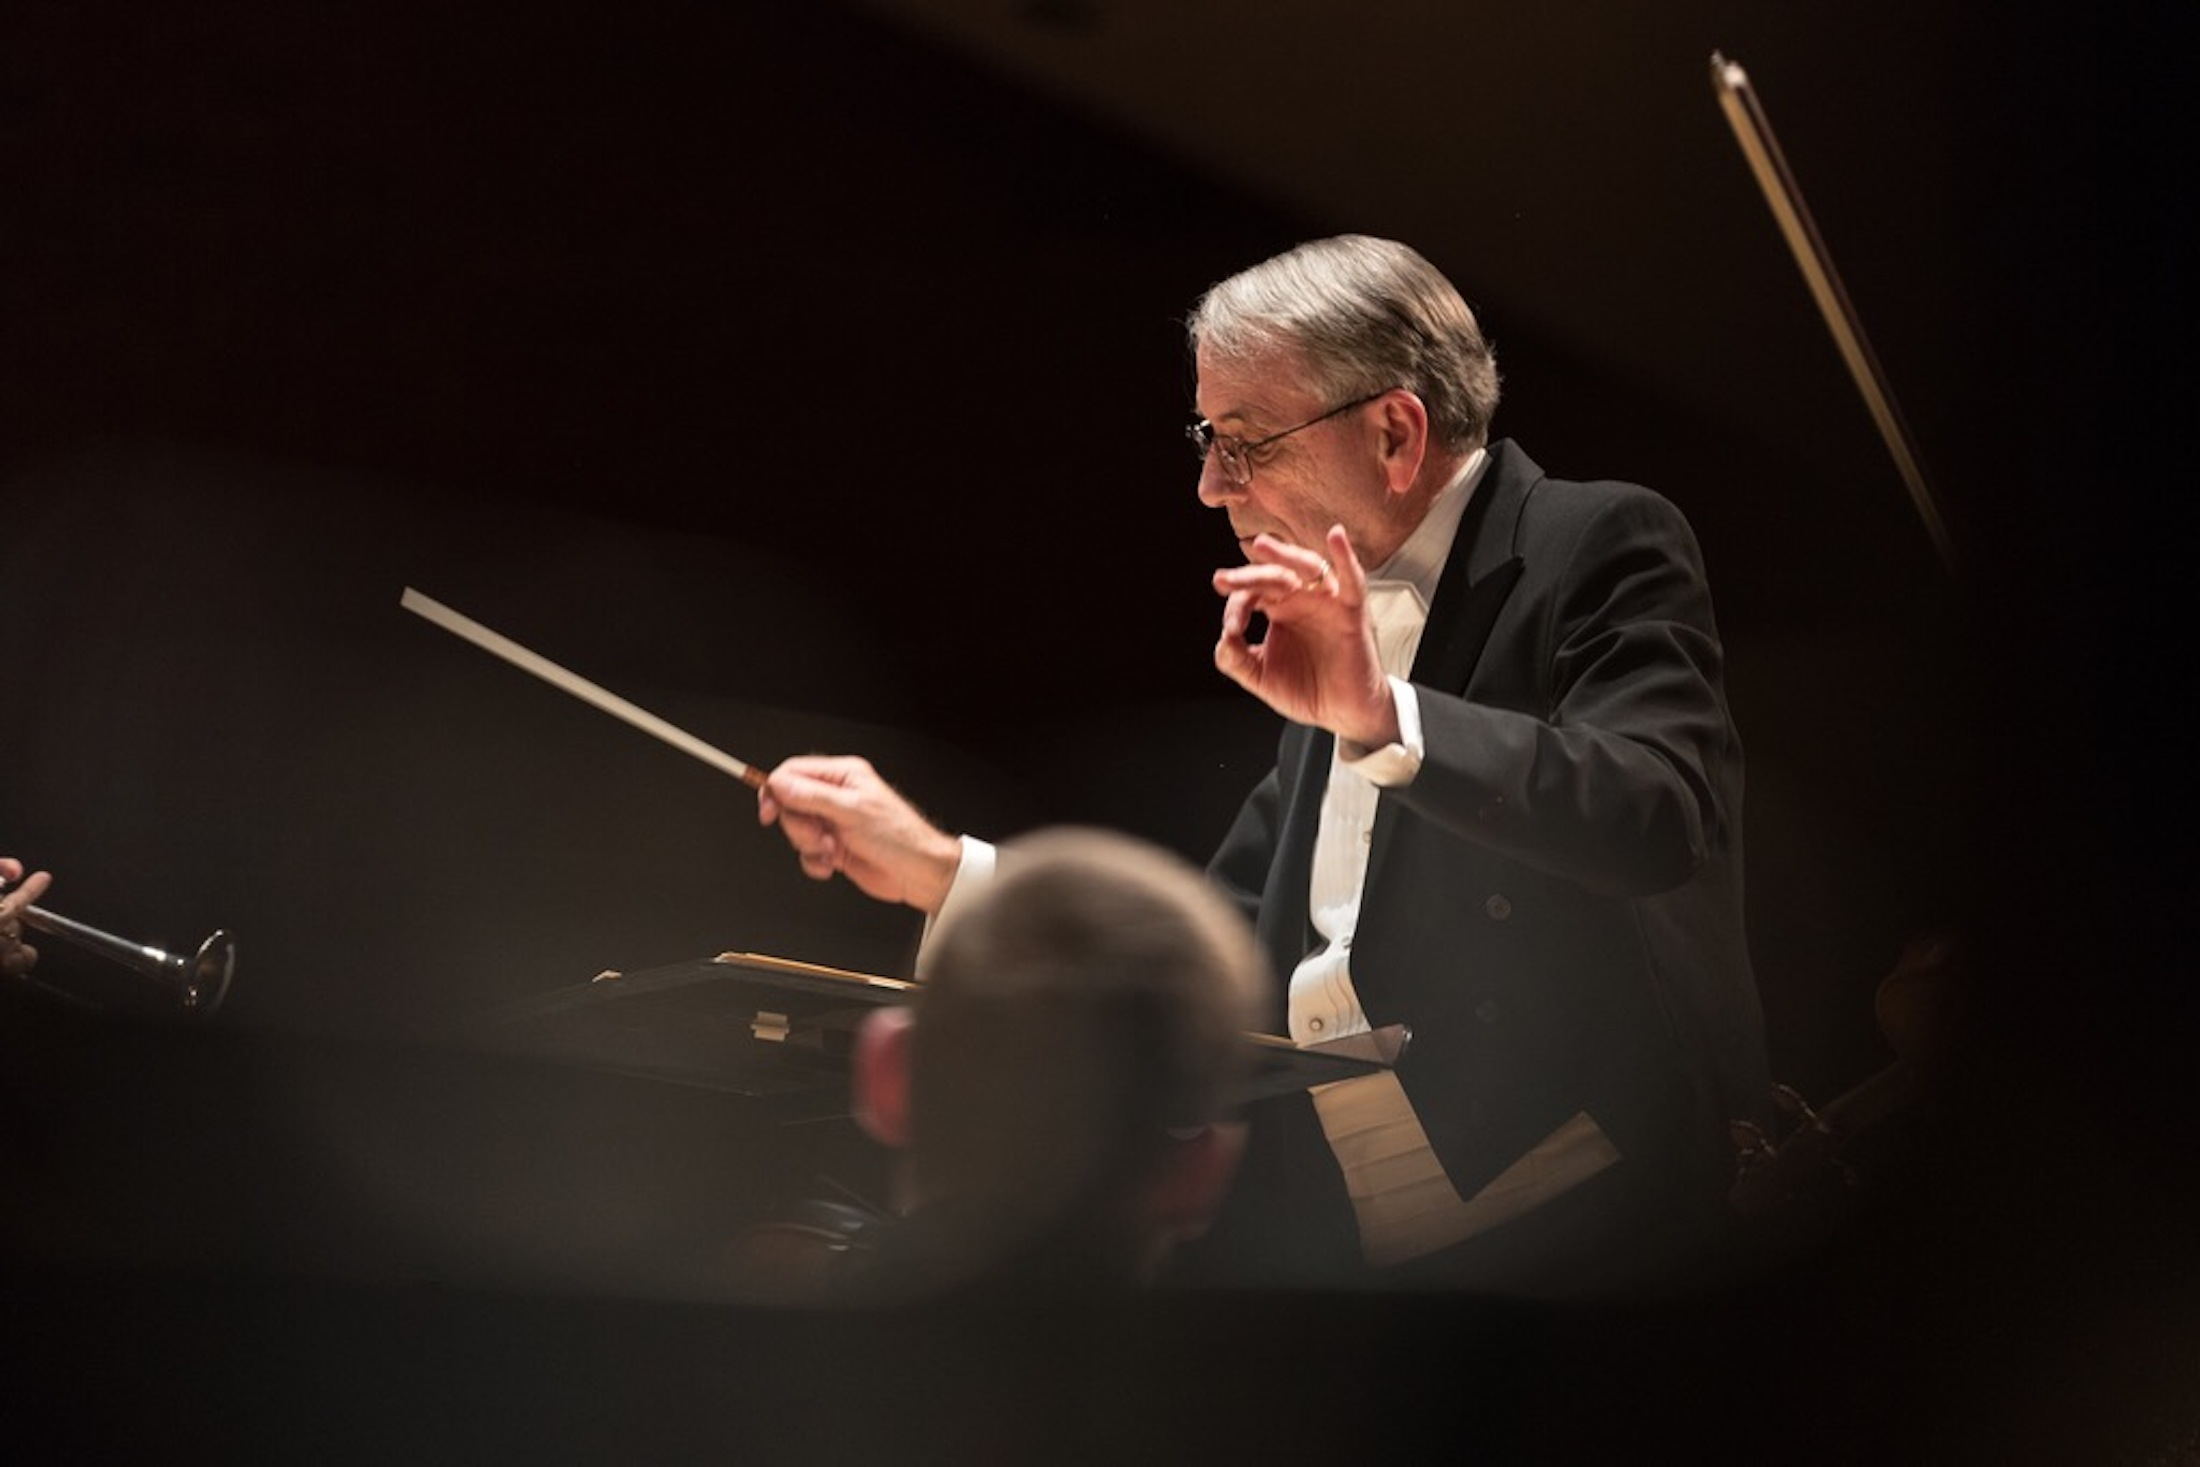 The UConn Wind Ensemble performs compositions by David Dzubay for the Raymond and Beverly Sackler Music Compositions Prize Concert held in Von der Mehden Recital Hall in Storrs, CT on Thursday, March 2, 2017. Dzubay won the Sackler Music Prize for his compositions in 2015. (Owen Bonaventura/The Daily Campus)